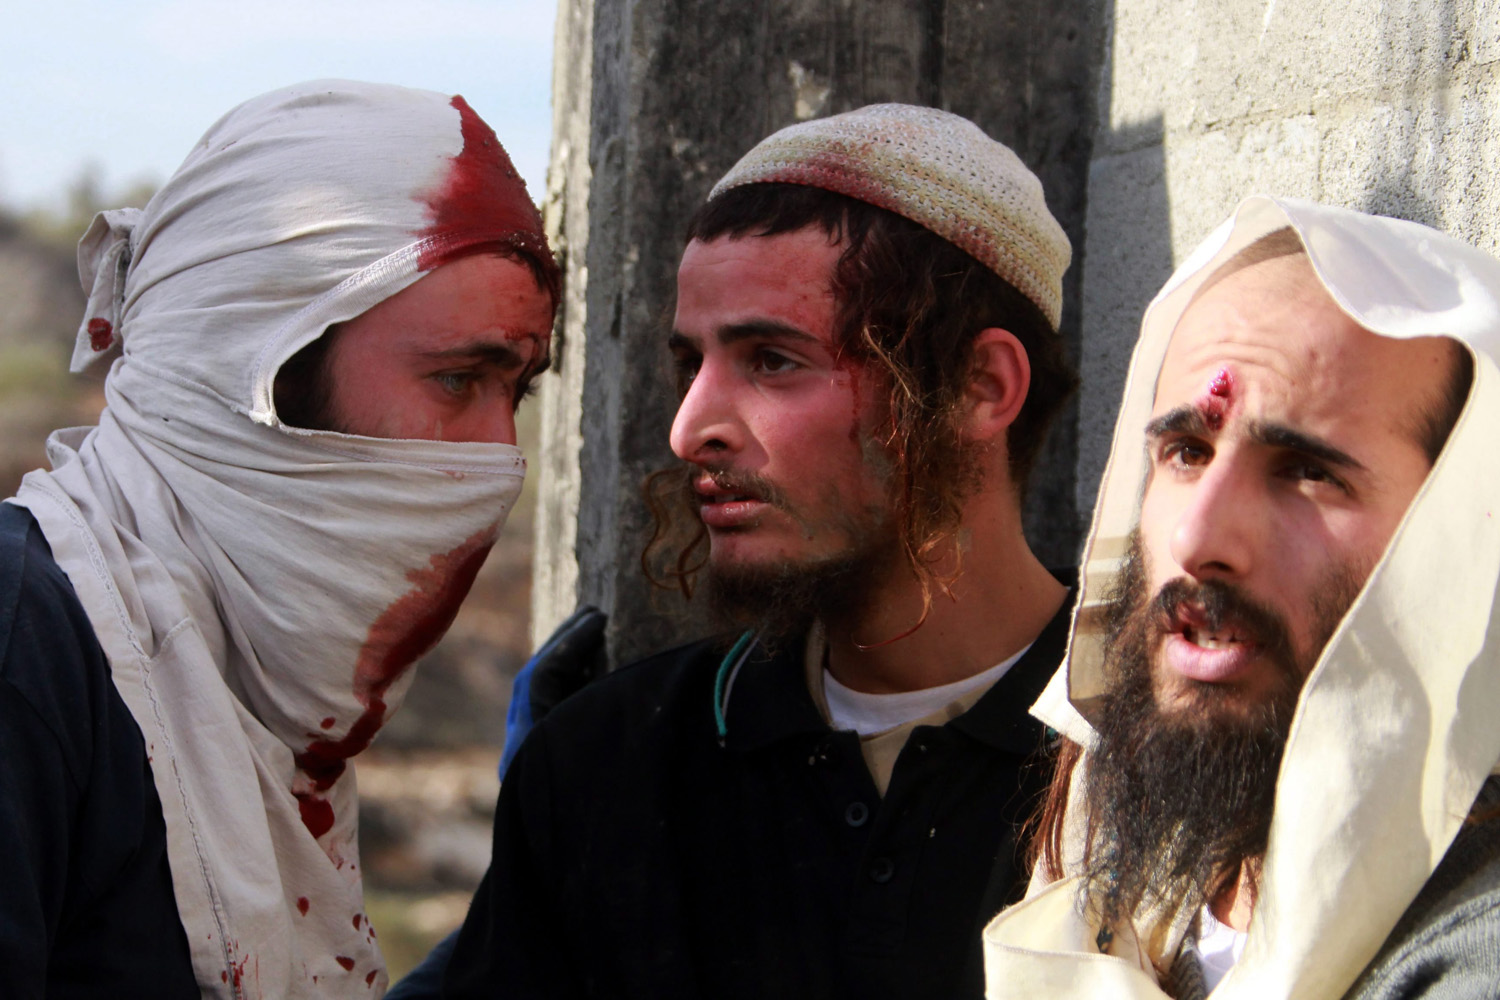 Jun. 7, 2014. Detained Israeli settlers are pictured  after confrontations with Palestinians in the village of Qusra, near the West Bank City of Nablus.